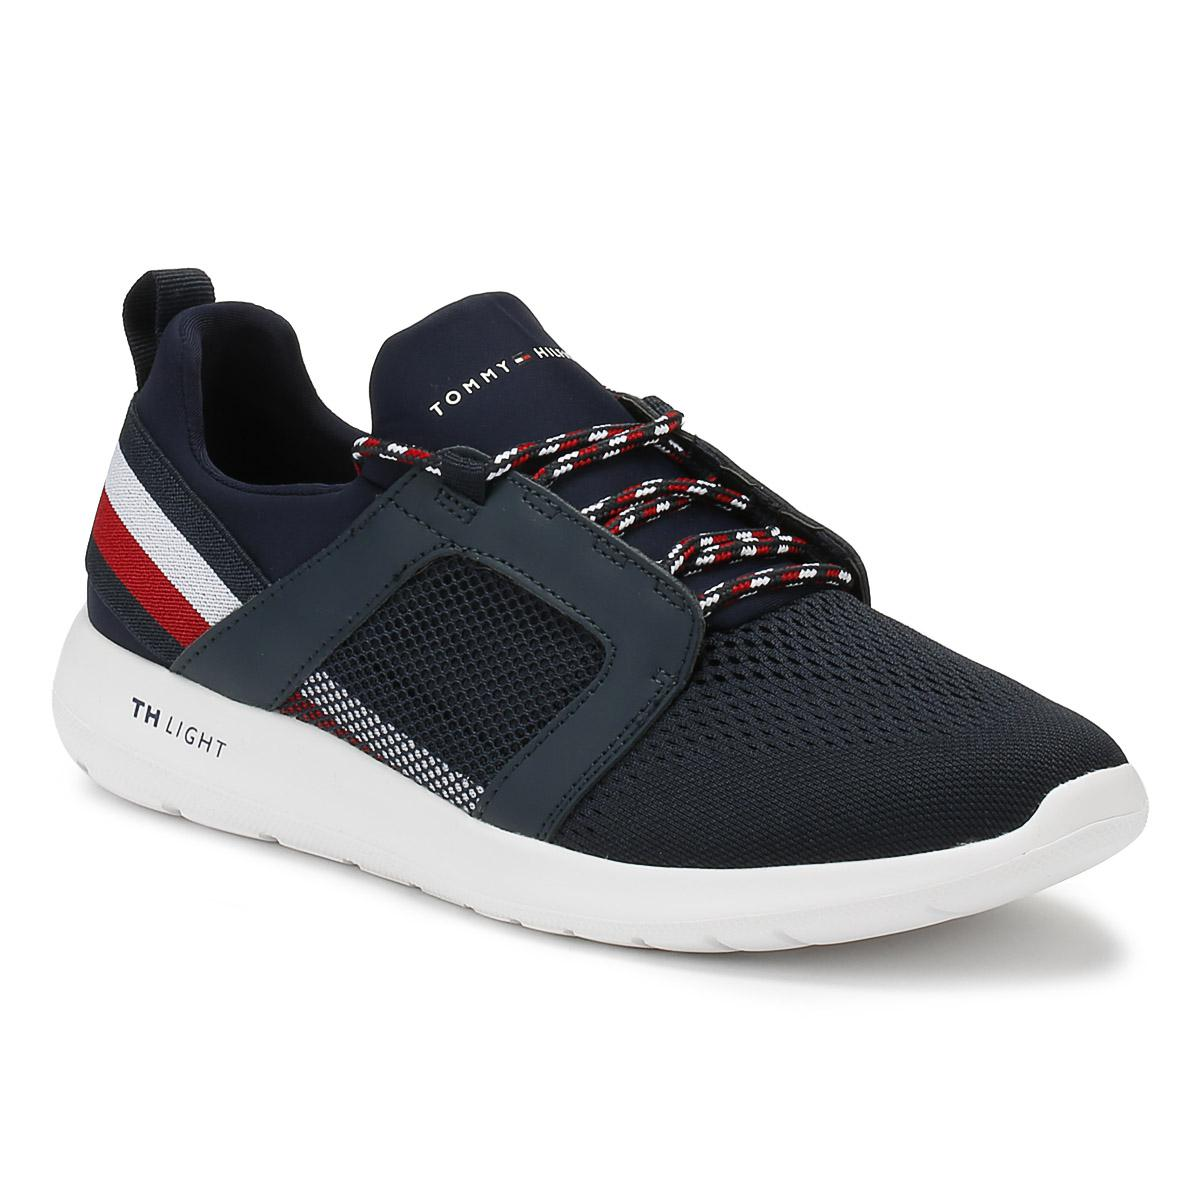 dd3cab34fb3 Lyst - Tommy Hilfiger Mens Midnight Navy Technical Material Trainers ...